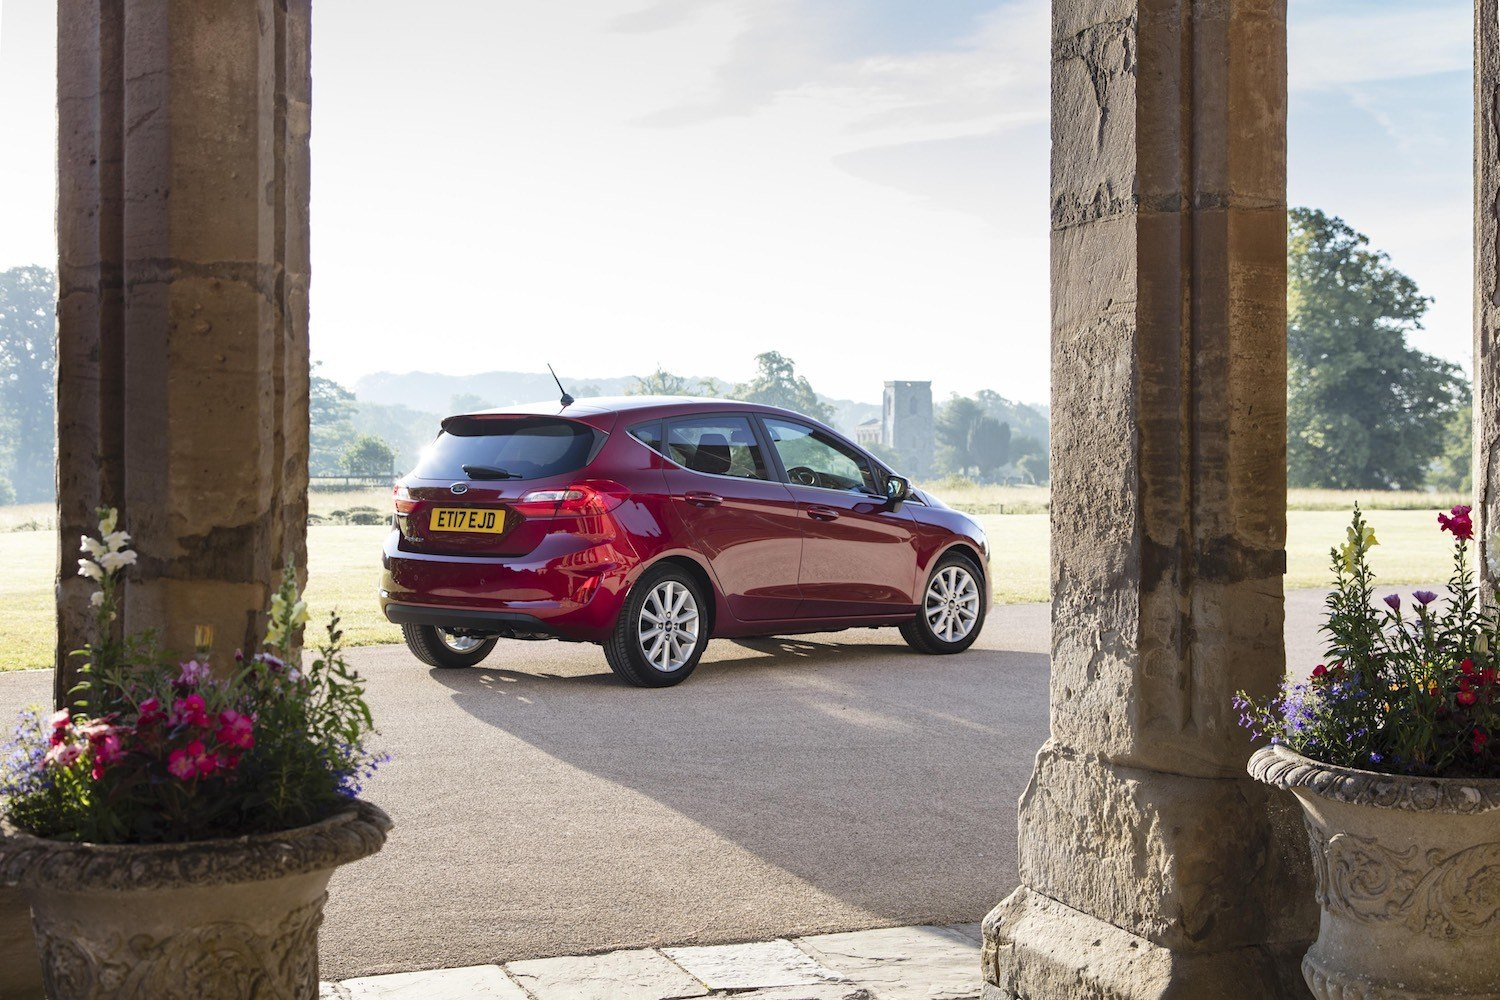 Tom Scanlan reviews the All New Ford Fiesta for Drive 17